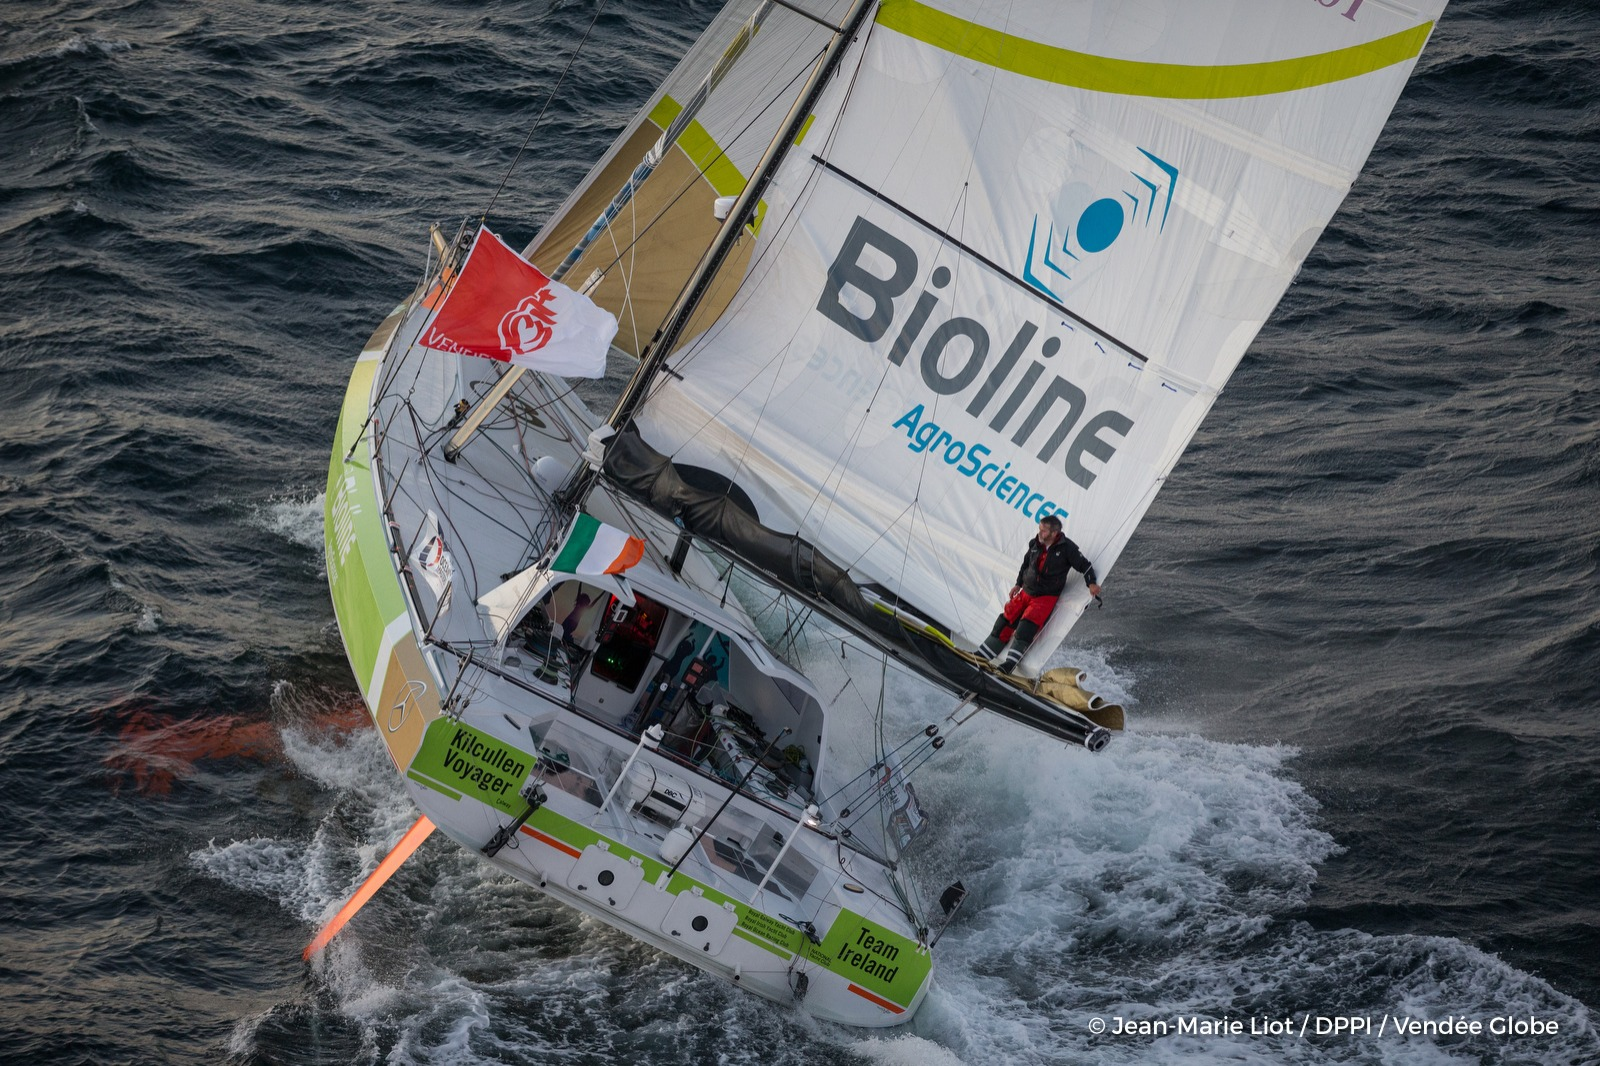 enda-o-coineen-irl-skipper-kilcullen-voyager-team-ireland-training-solo-for-the-vendee-globe-off-belle-ile-on-october-6-2016-photo-jean-marie-liot-dppi-vendee-globeimages-aeriennes-de-enda-o-coineen-